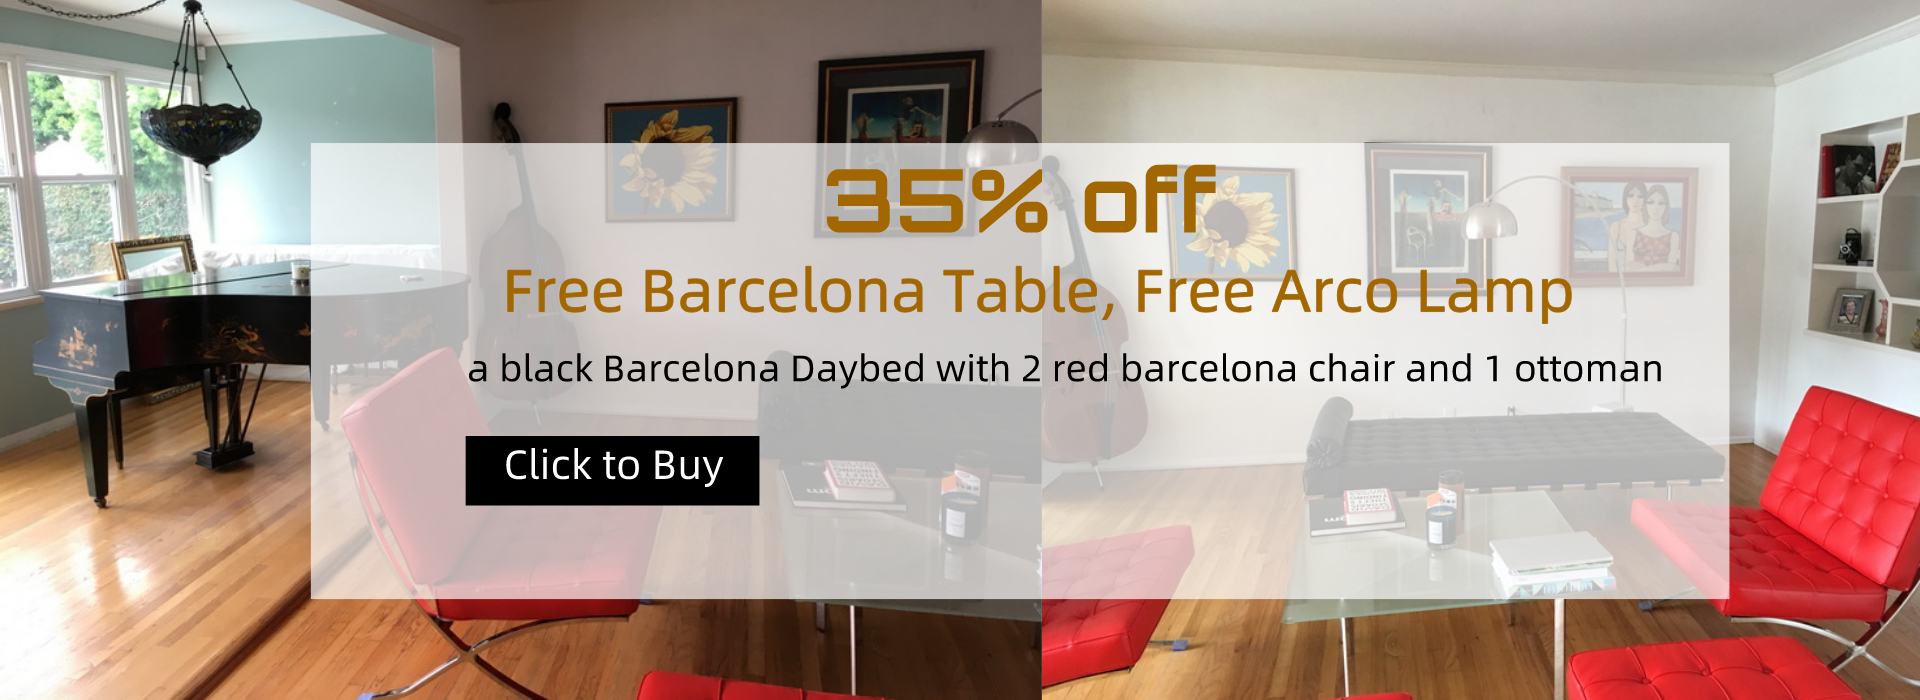 black Barcelona Daybed with 2 red barcelona style chair and one